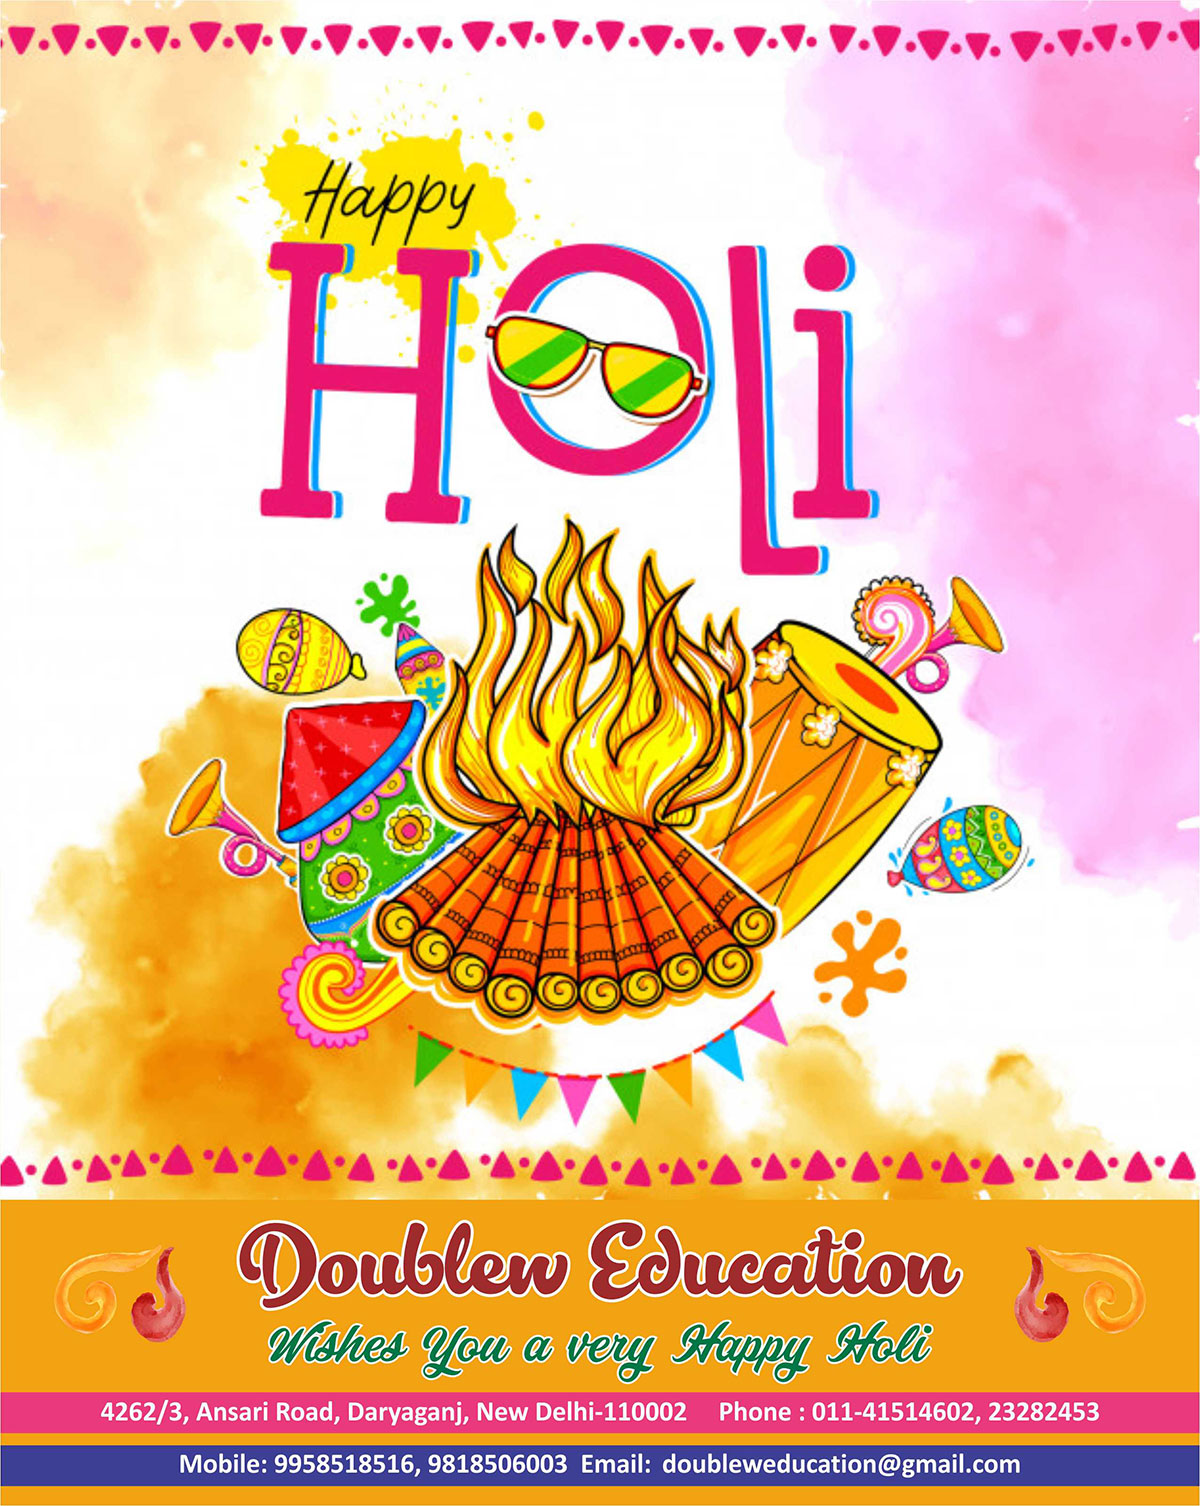 Let the colours of Holi spread the message of Love, Peace & Happiness!